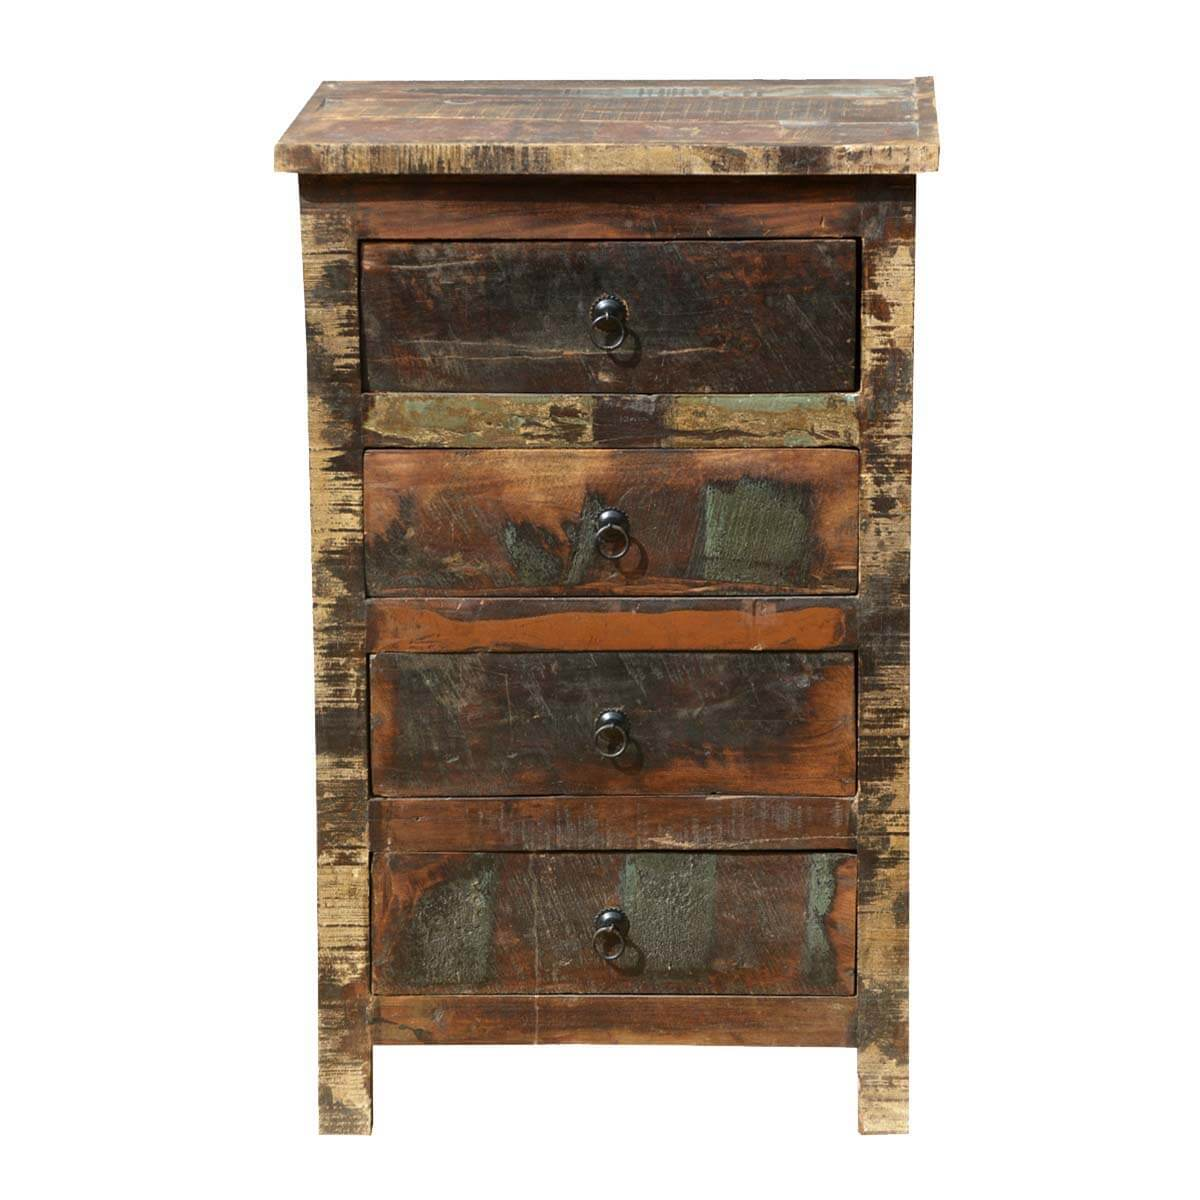 Appalachian Rustic Distressed Reclaimed Wood 4 Drawer Nightstand - Distressed Dining Room Table